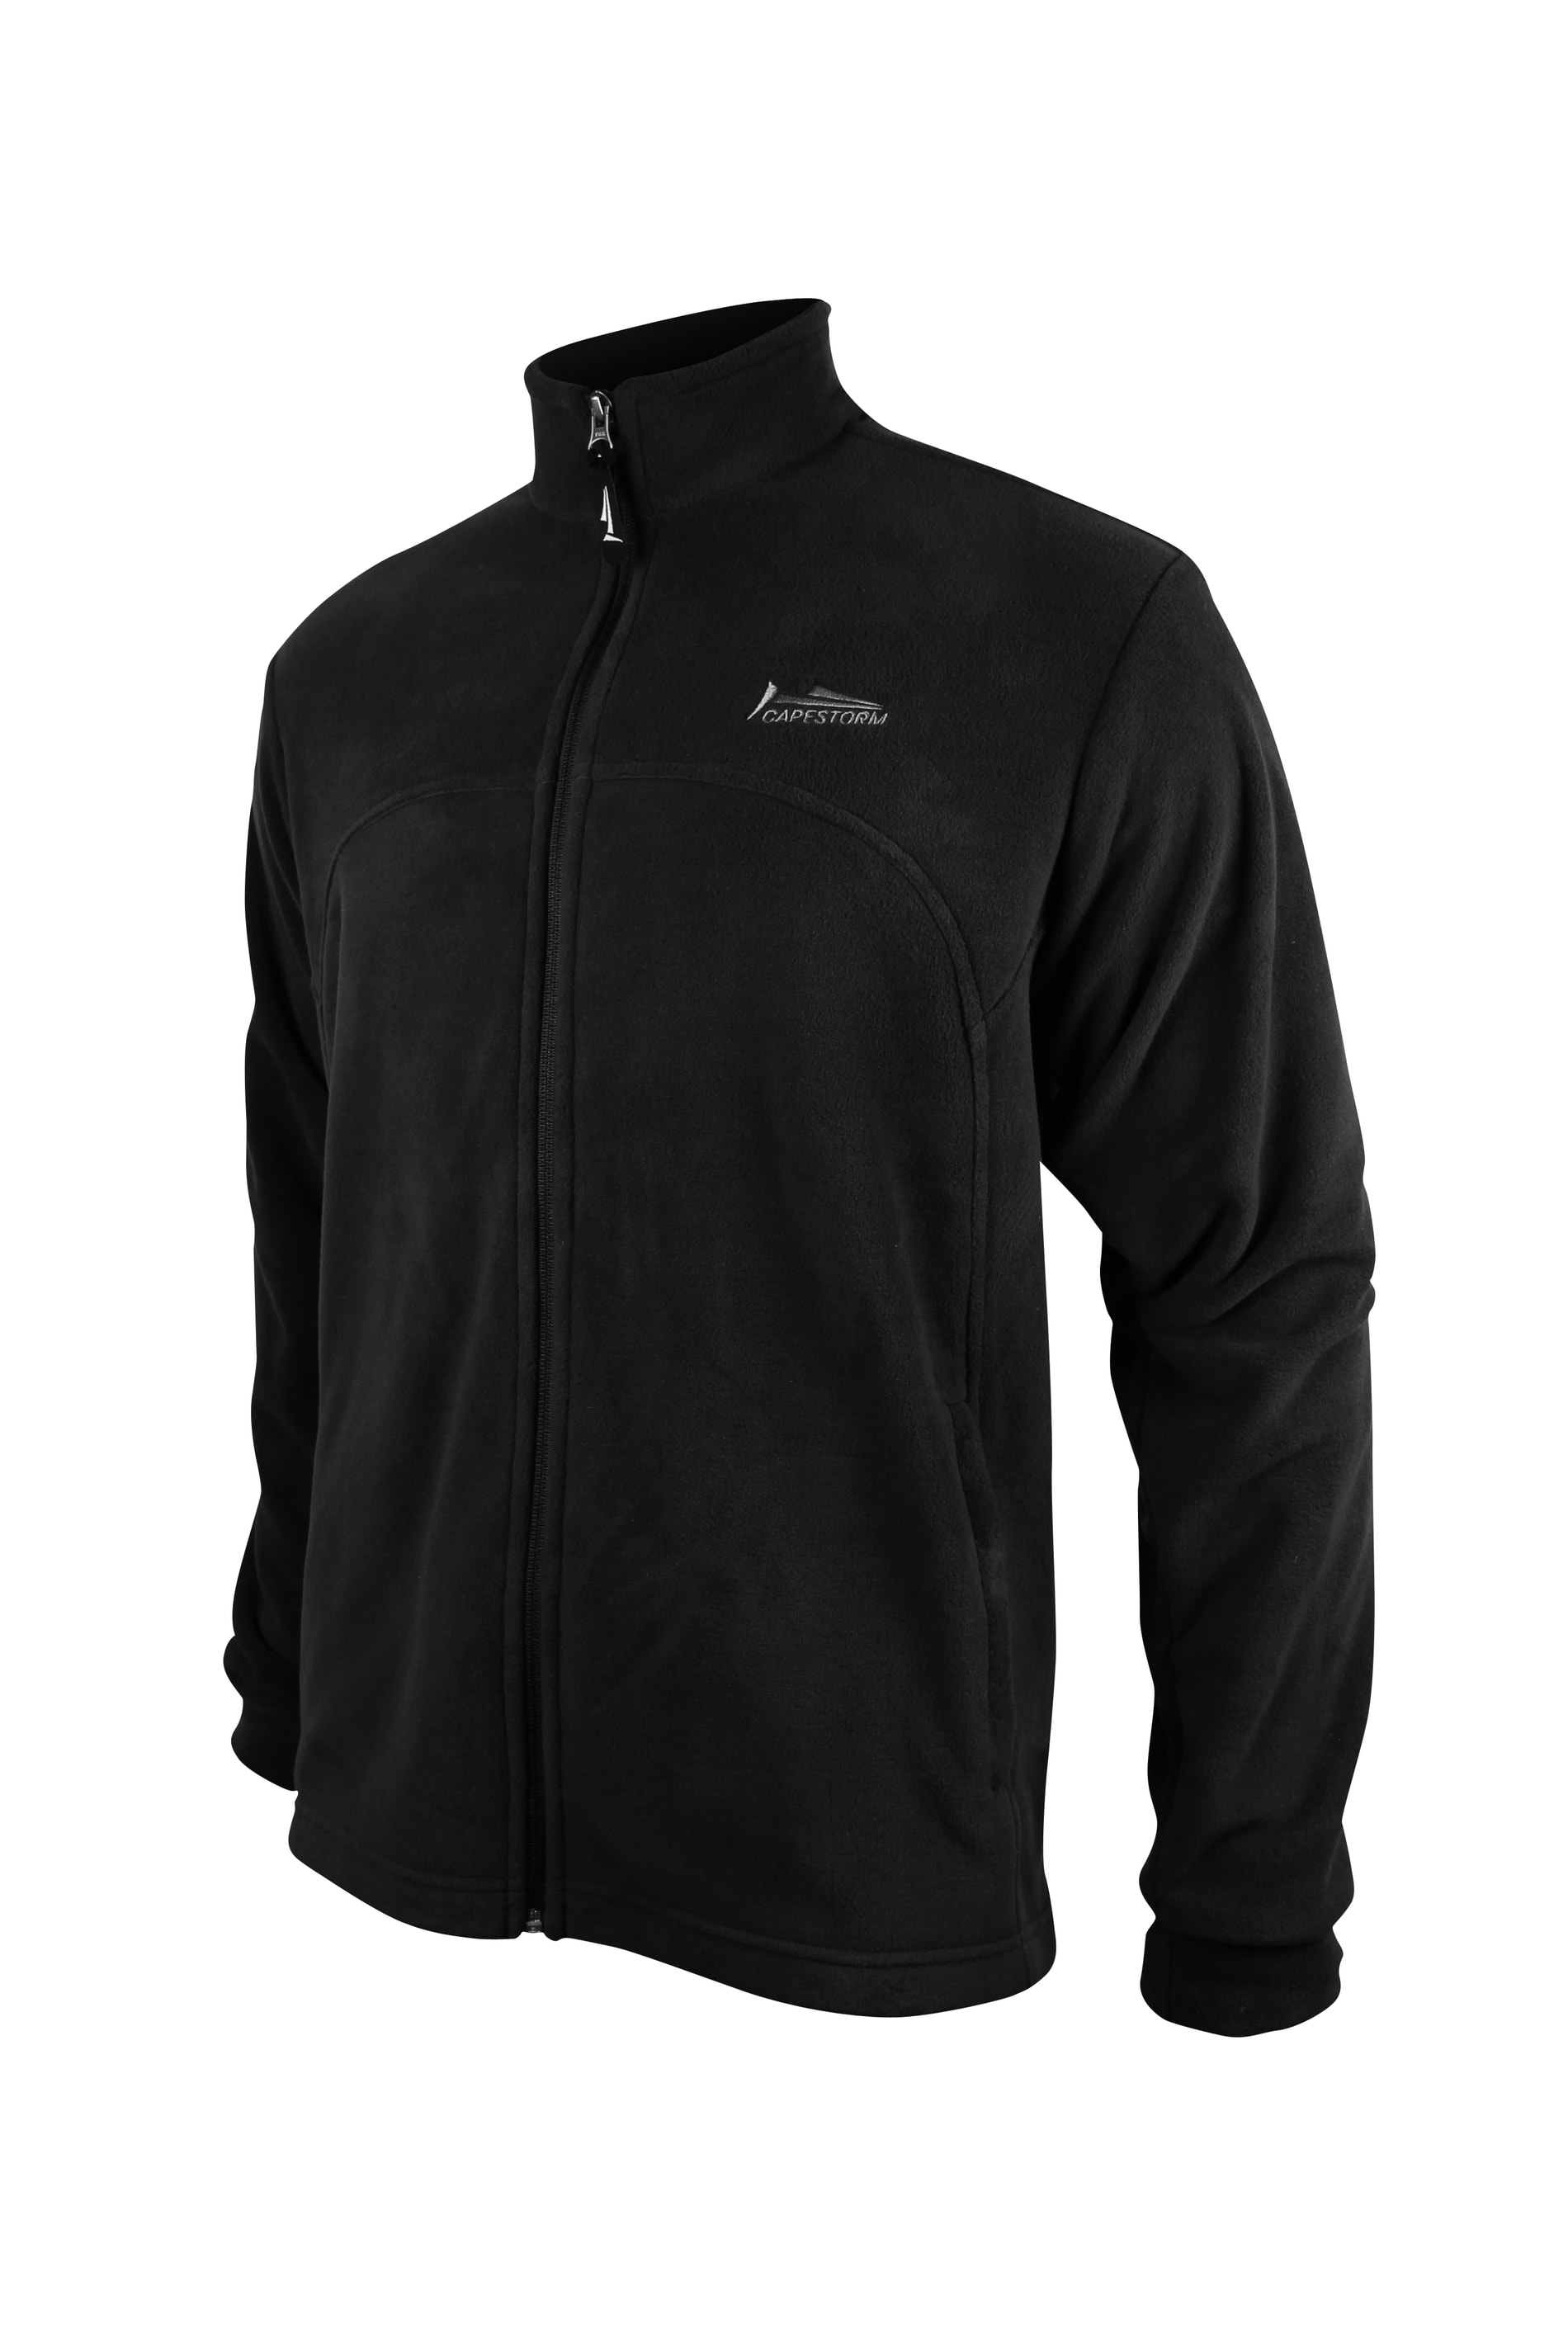 Cape Storm Men's Essential Jacket